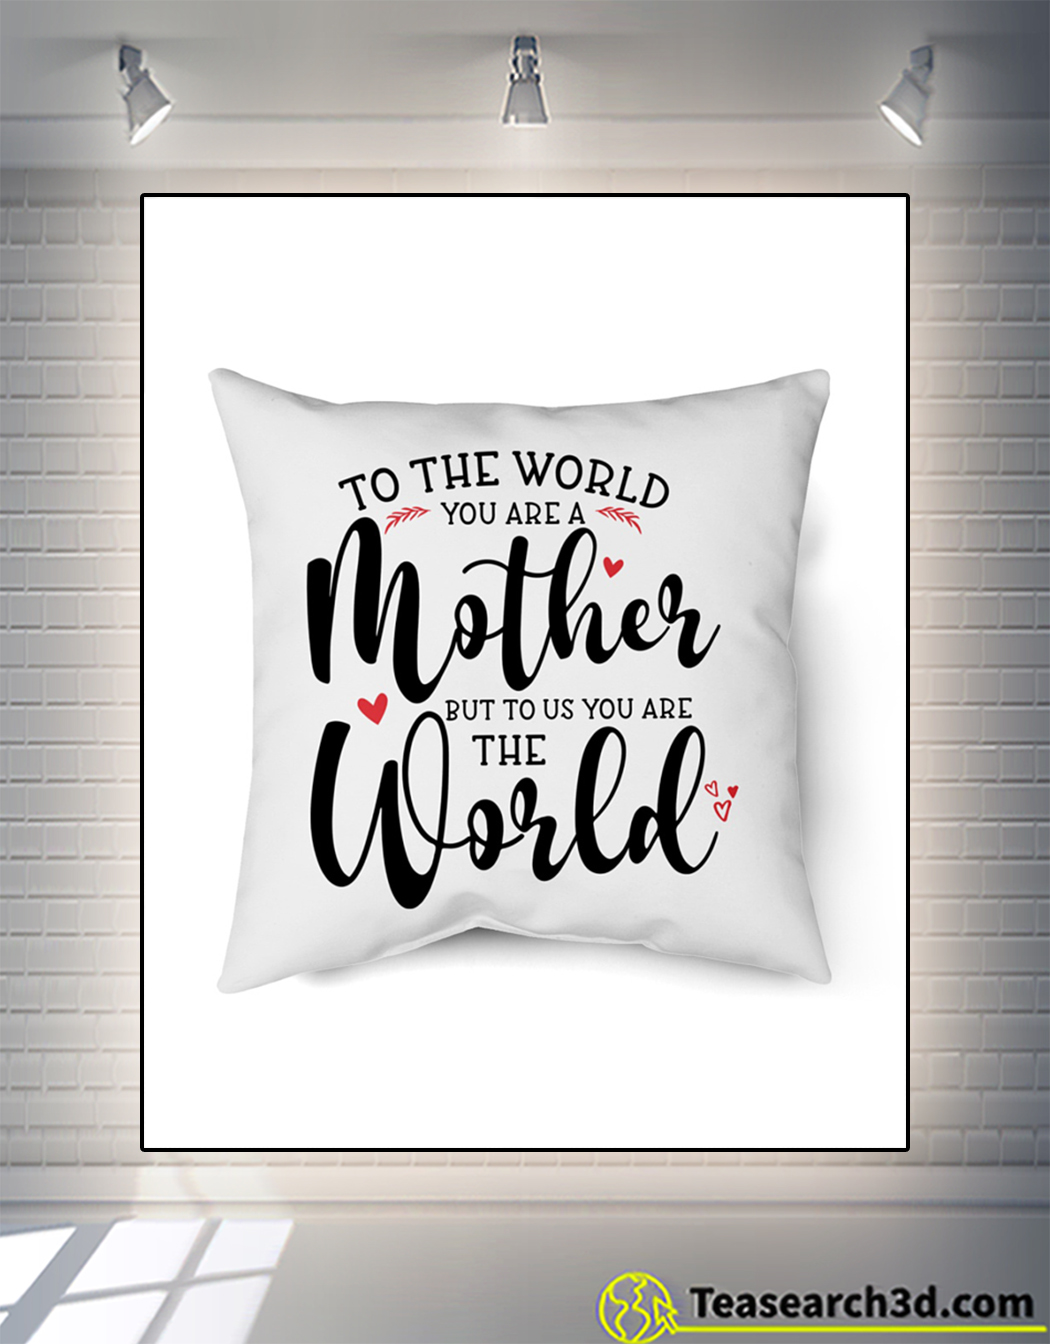 To the world you are a mother but to us you are the world pillow